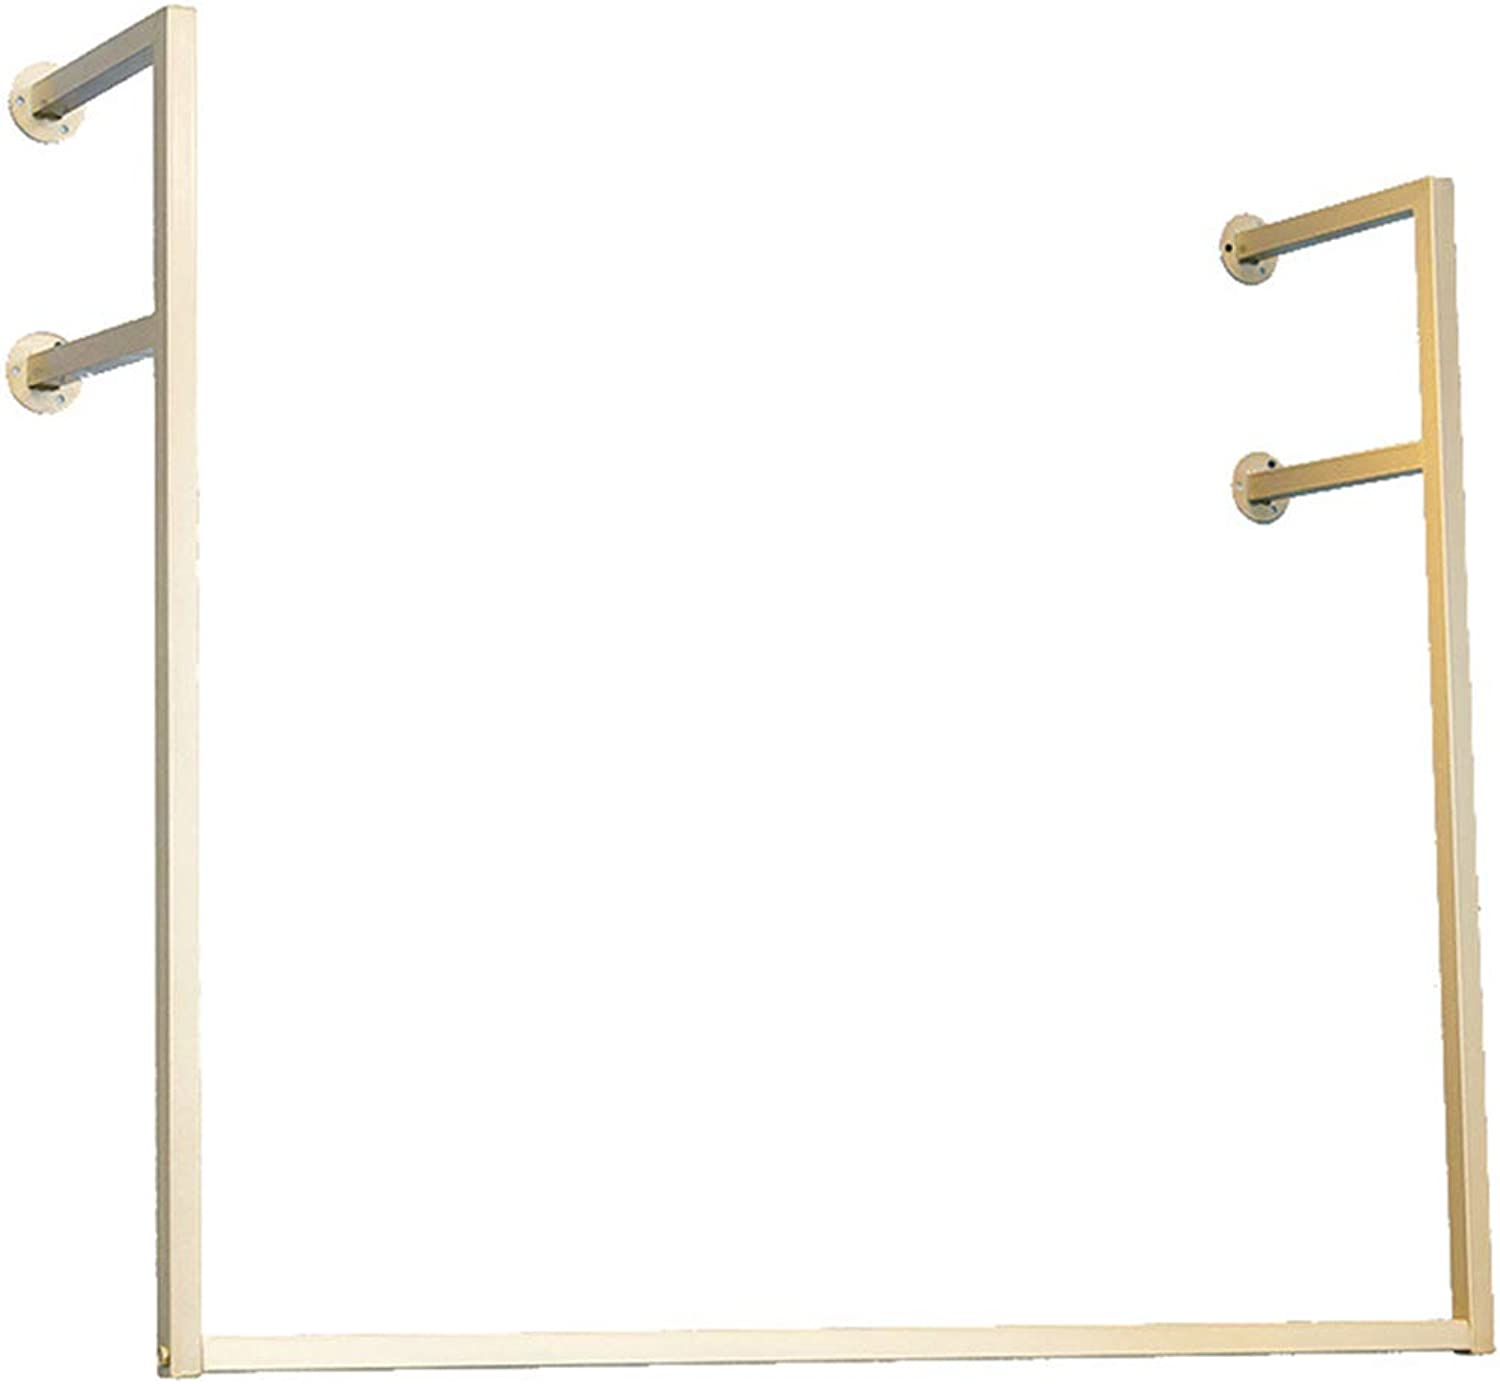 Coat Rack, gold Wrought Iron Clothing Display Stand Wall Hanging Side Hanging Clothes Hanger